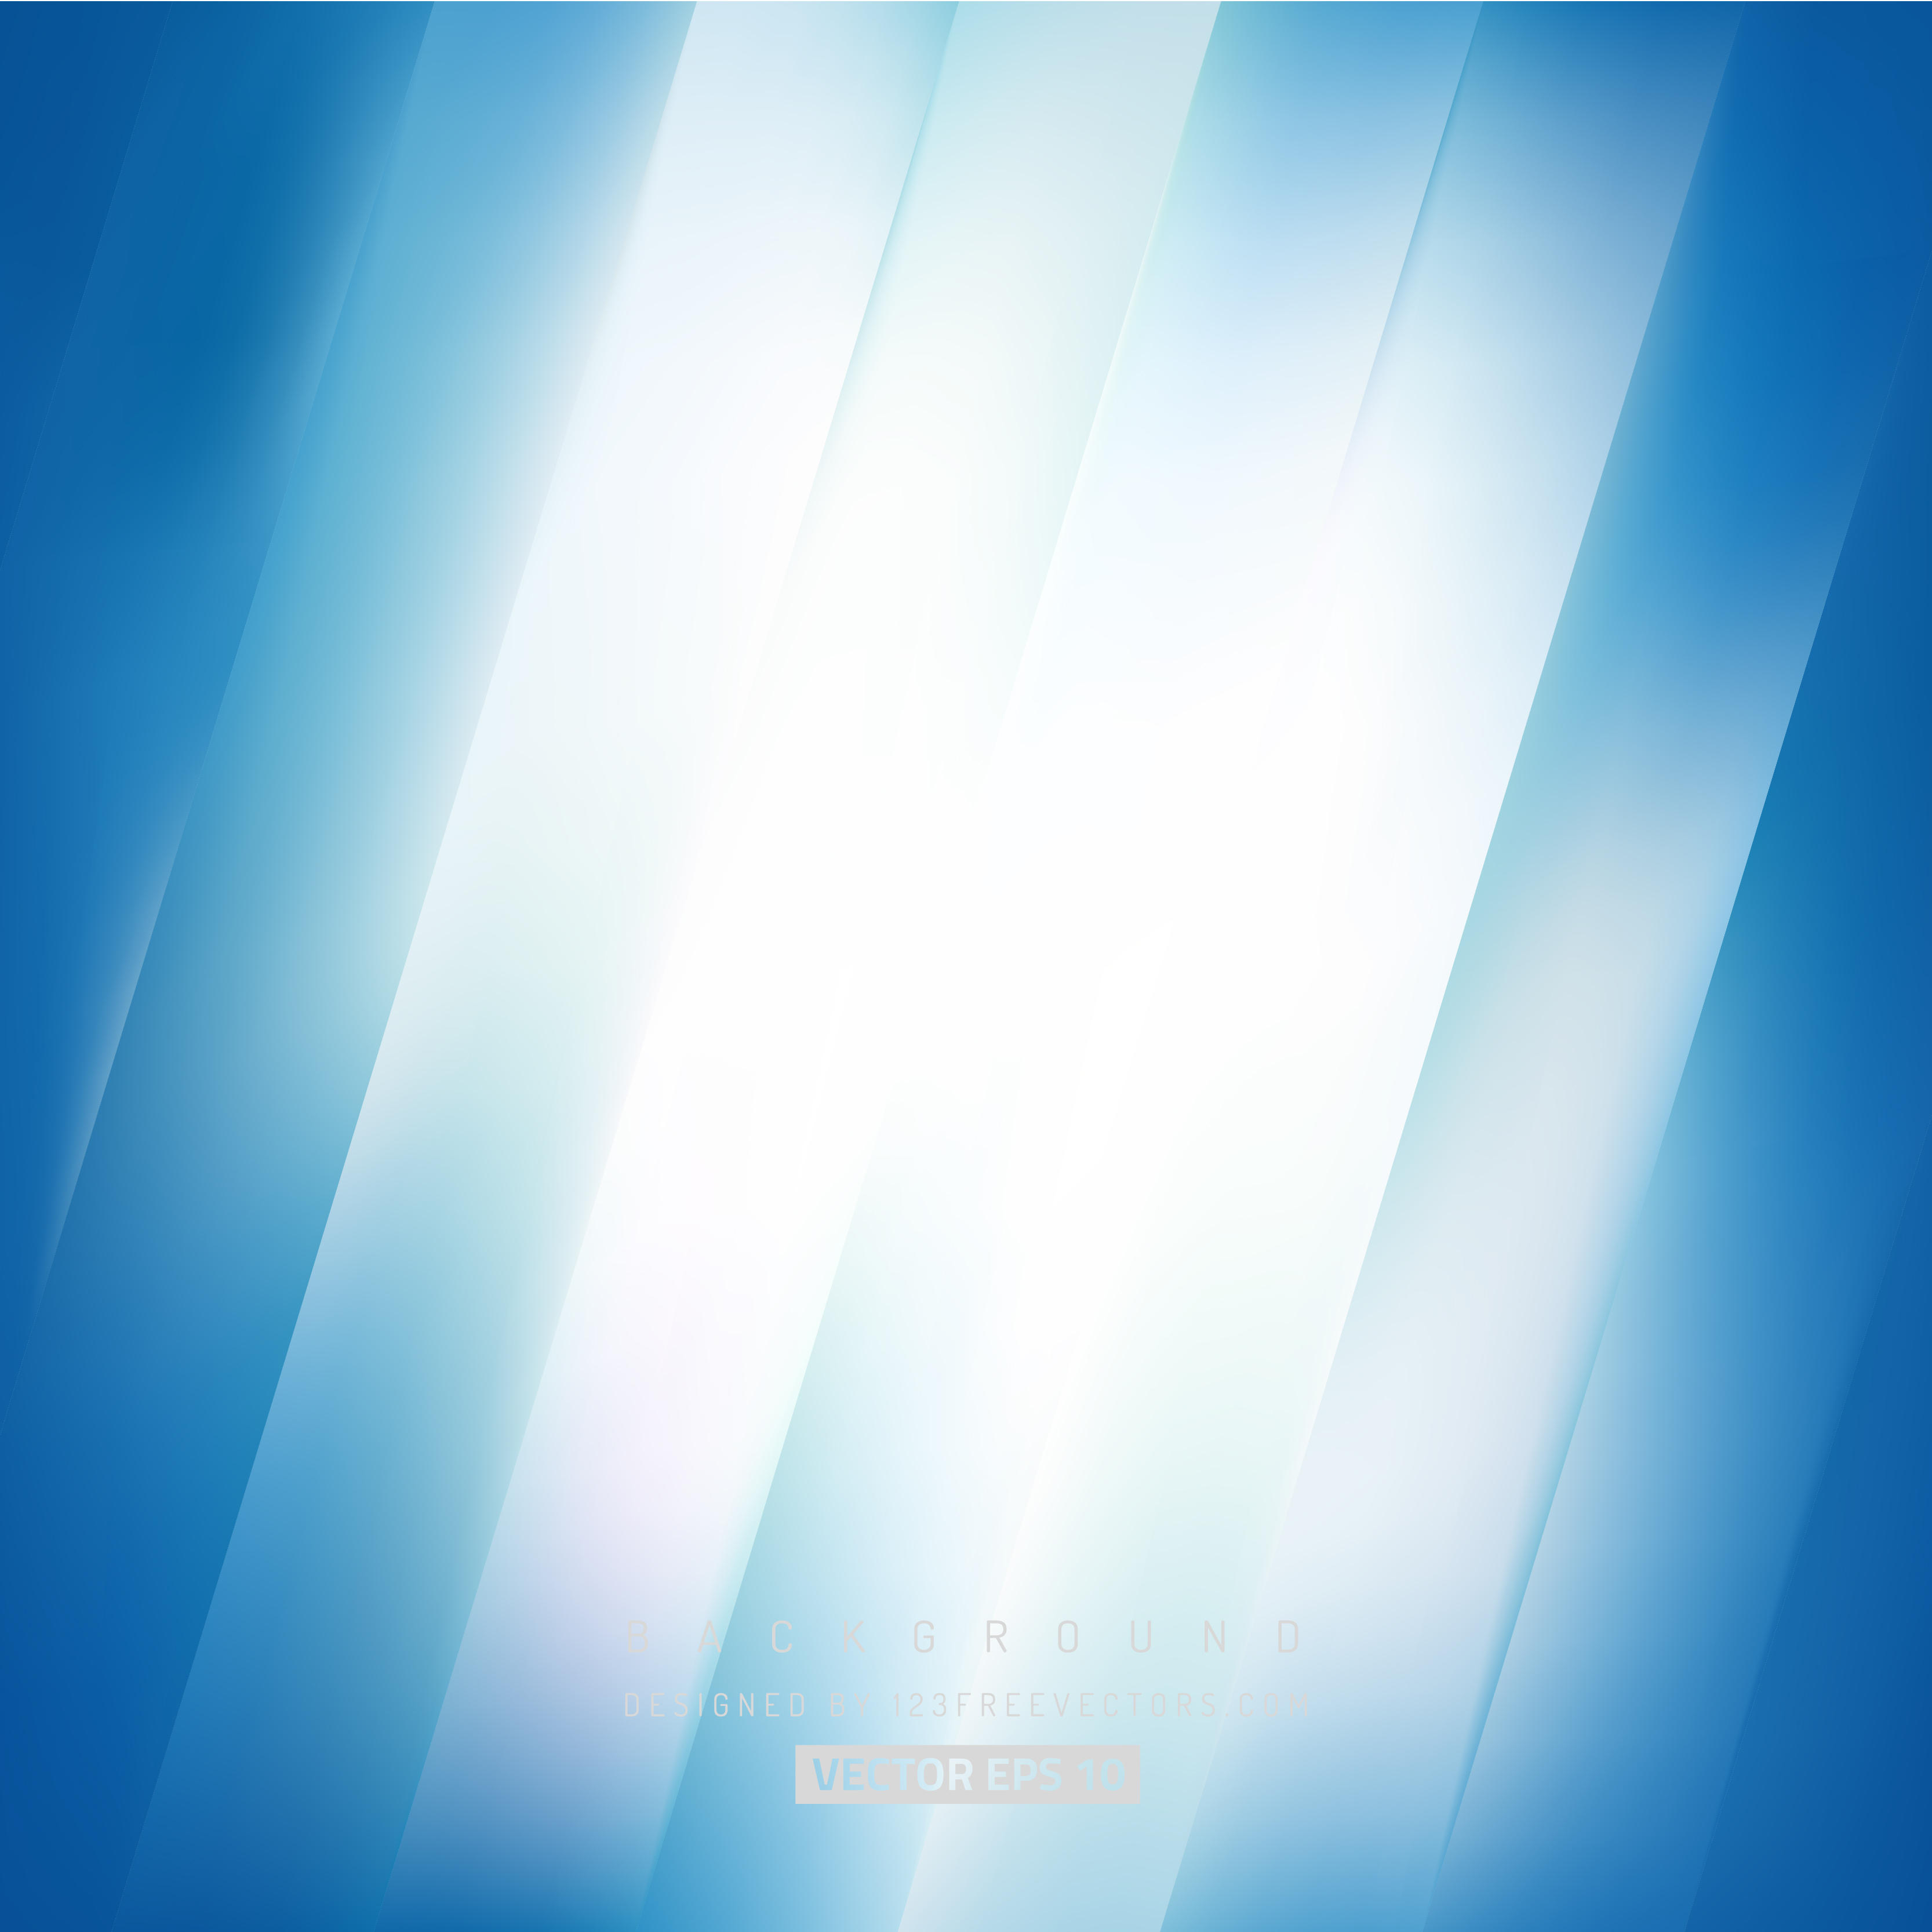 Smashing Wedding 11010 Abstract Blue Stripes Background Design Blue Stars Blue Background Background dpreview Blue And White Background